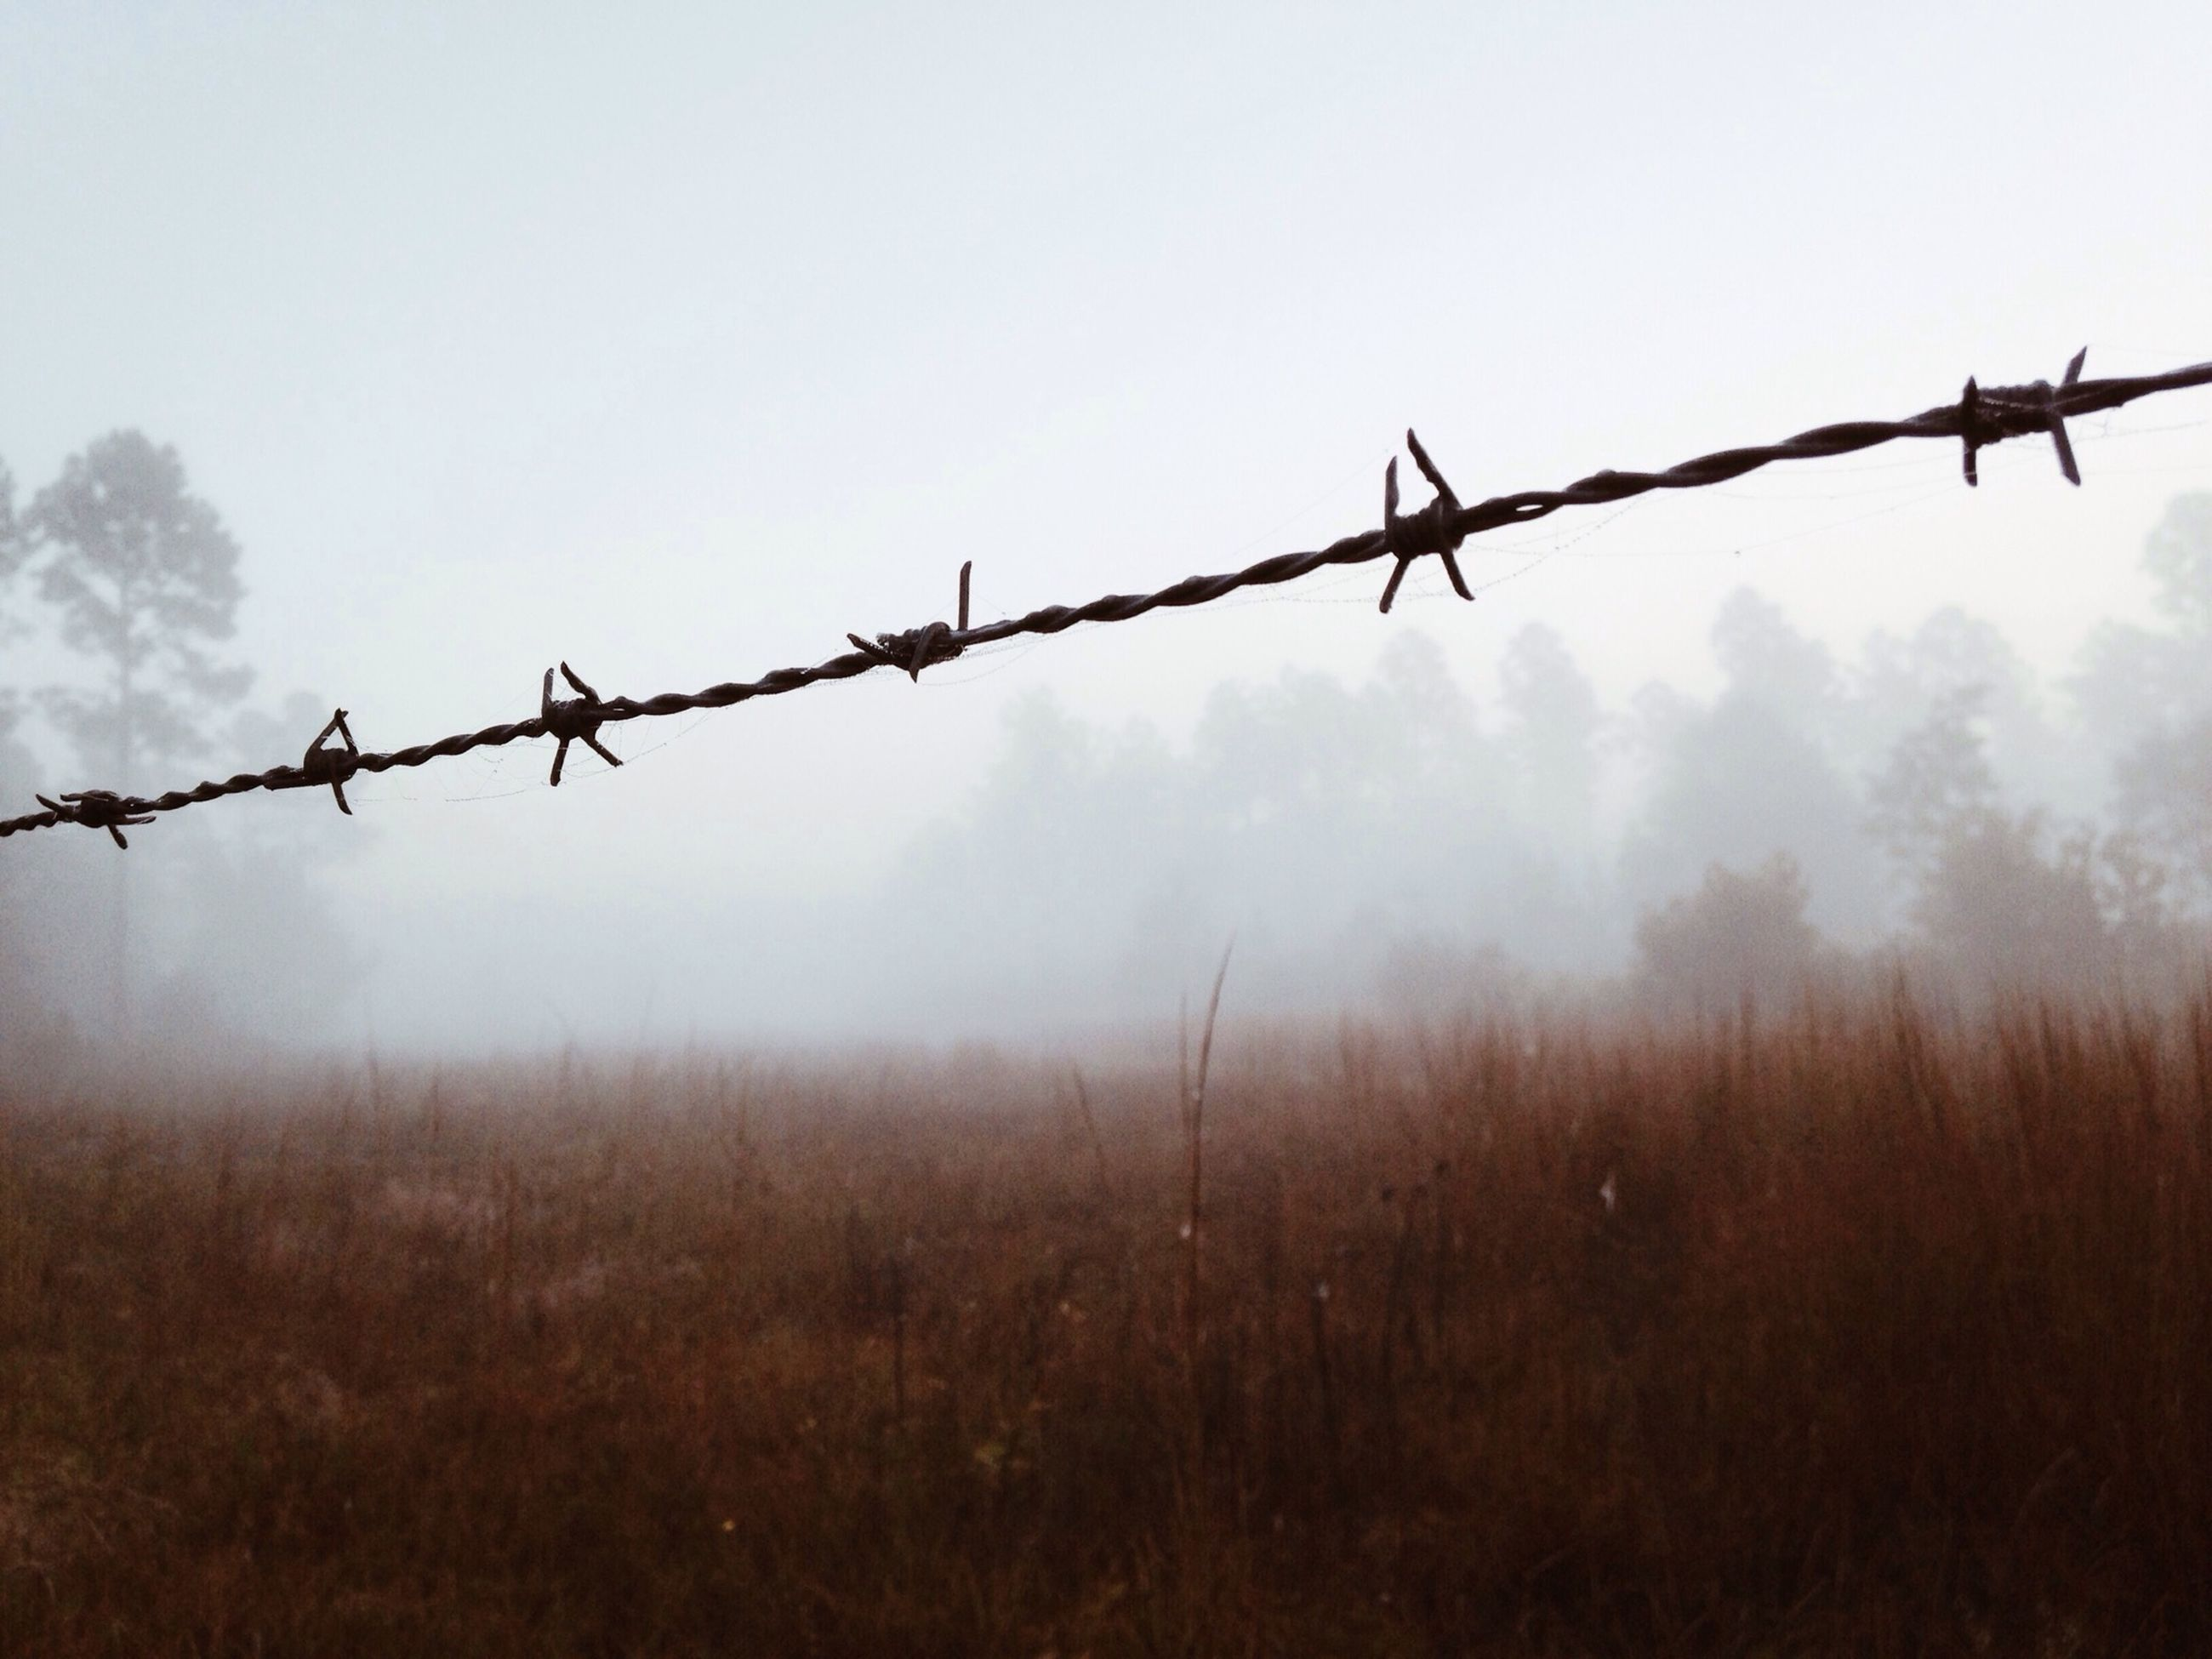 barbed wire, fence, safety, protection, security, focus on foreground, sky, clear sky, sharp, metal, nature, silhouette, close-up, outdoors, no people, day, wire, bird, field